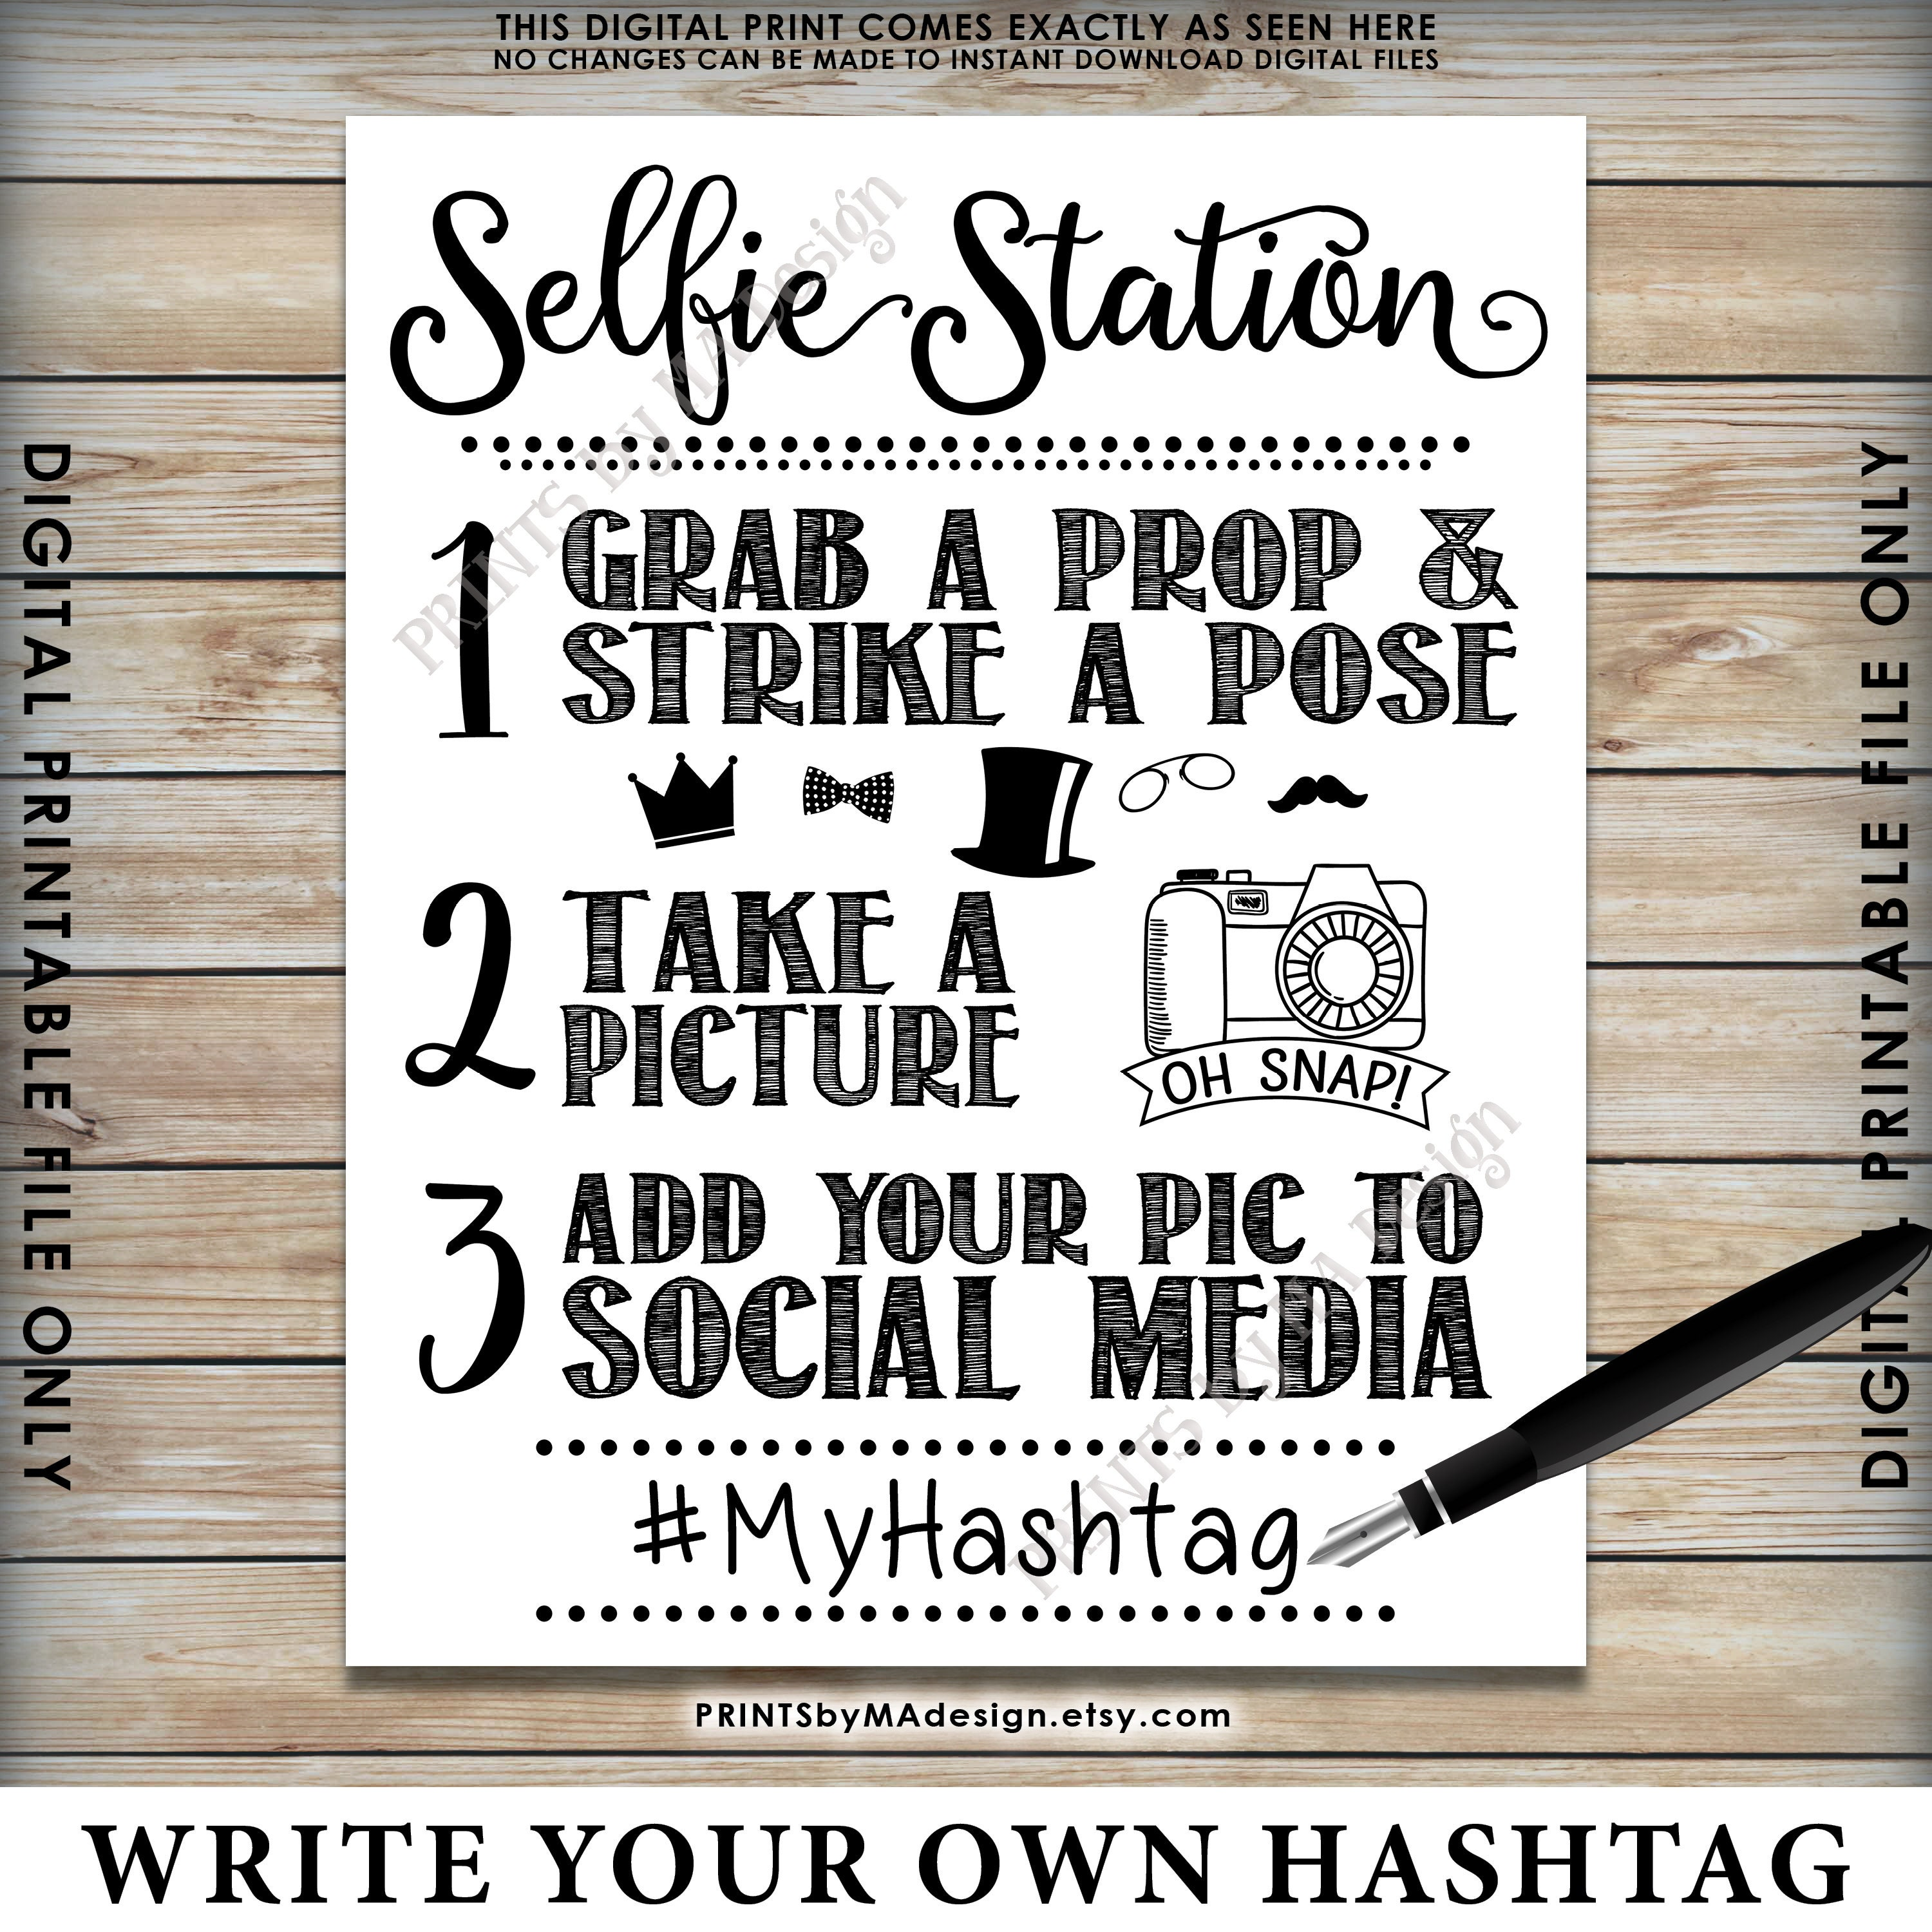 photograph about Selfie Station Sign Free Printable titled Selfie Station Indicator, Percentage your pic upon Social Media, Snap a